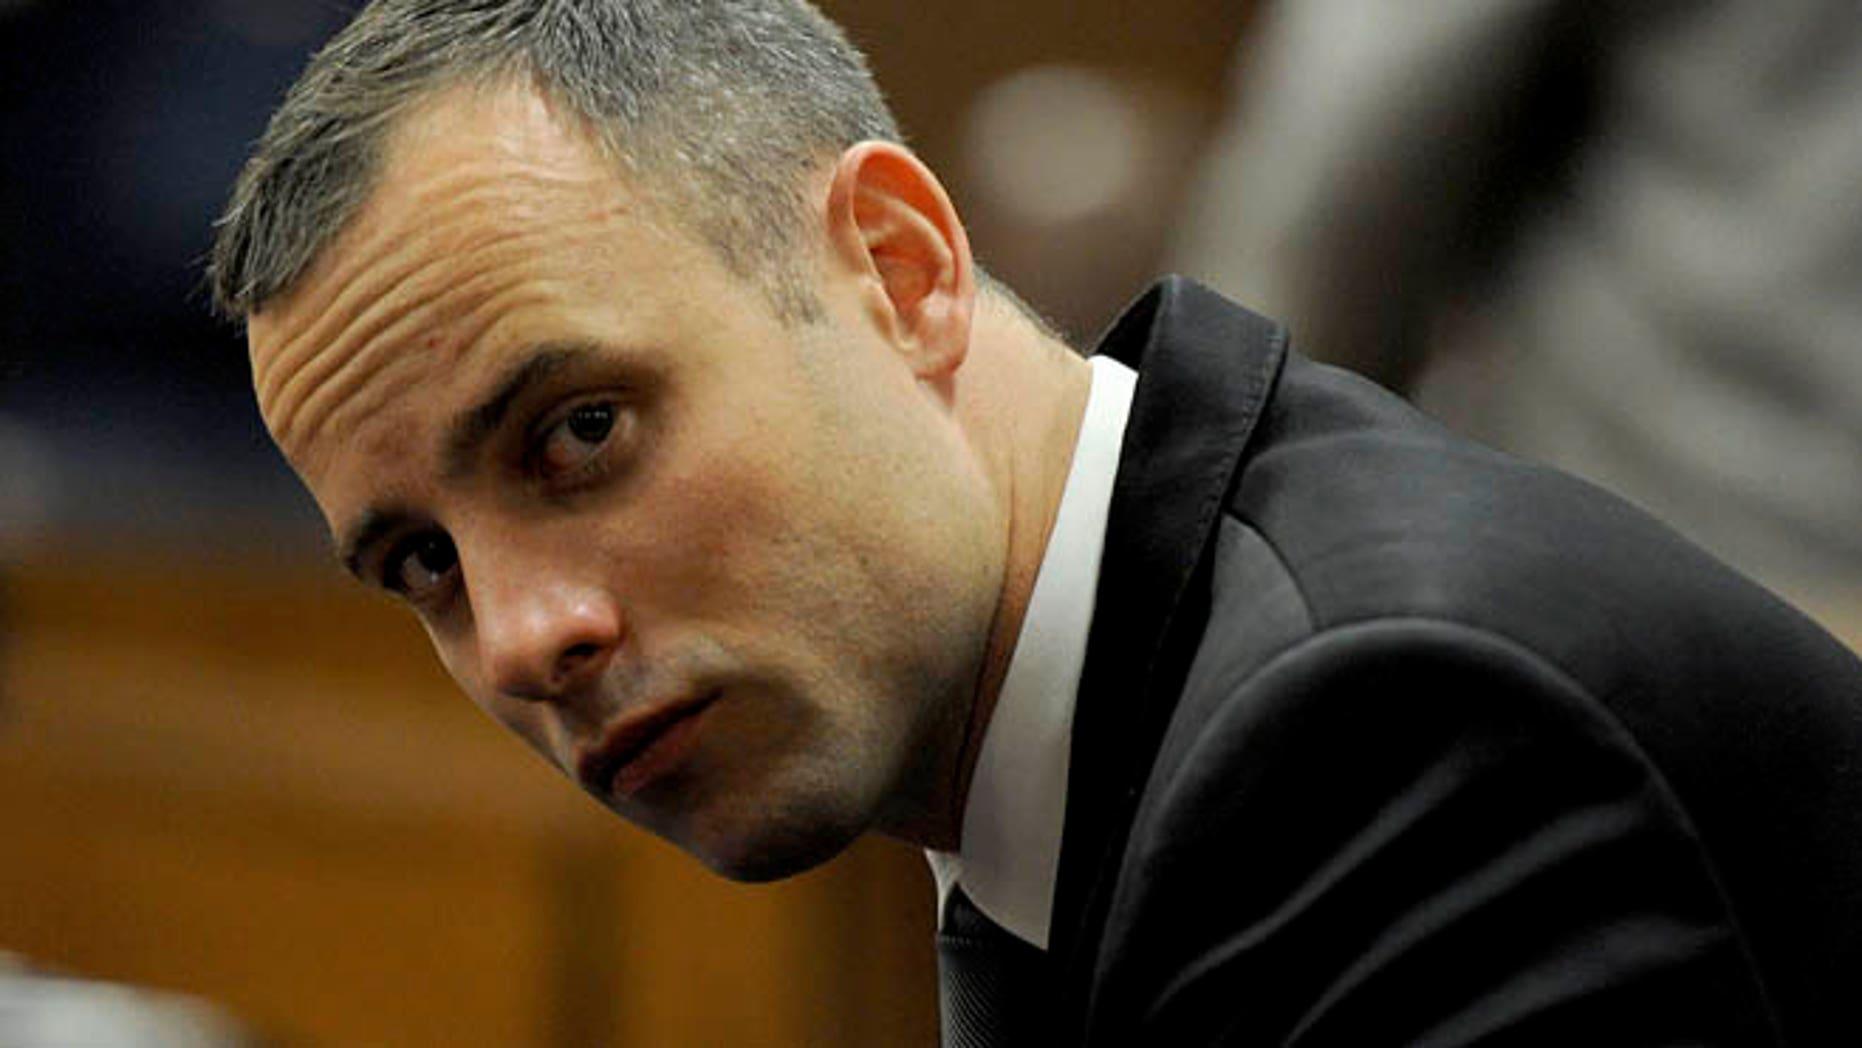 May 12, 2014: Oscar Pistorius sits in court for his ongoing murder trial in Pretoria, South Africa.